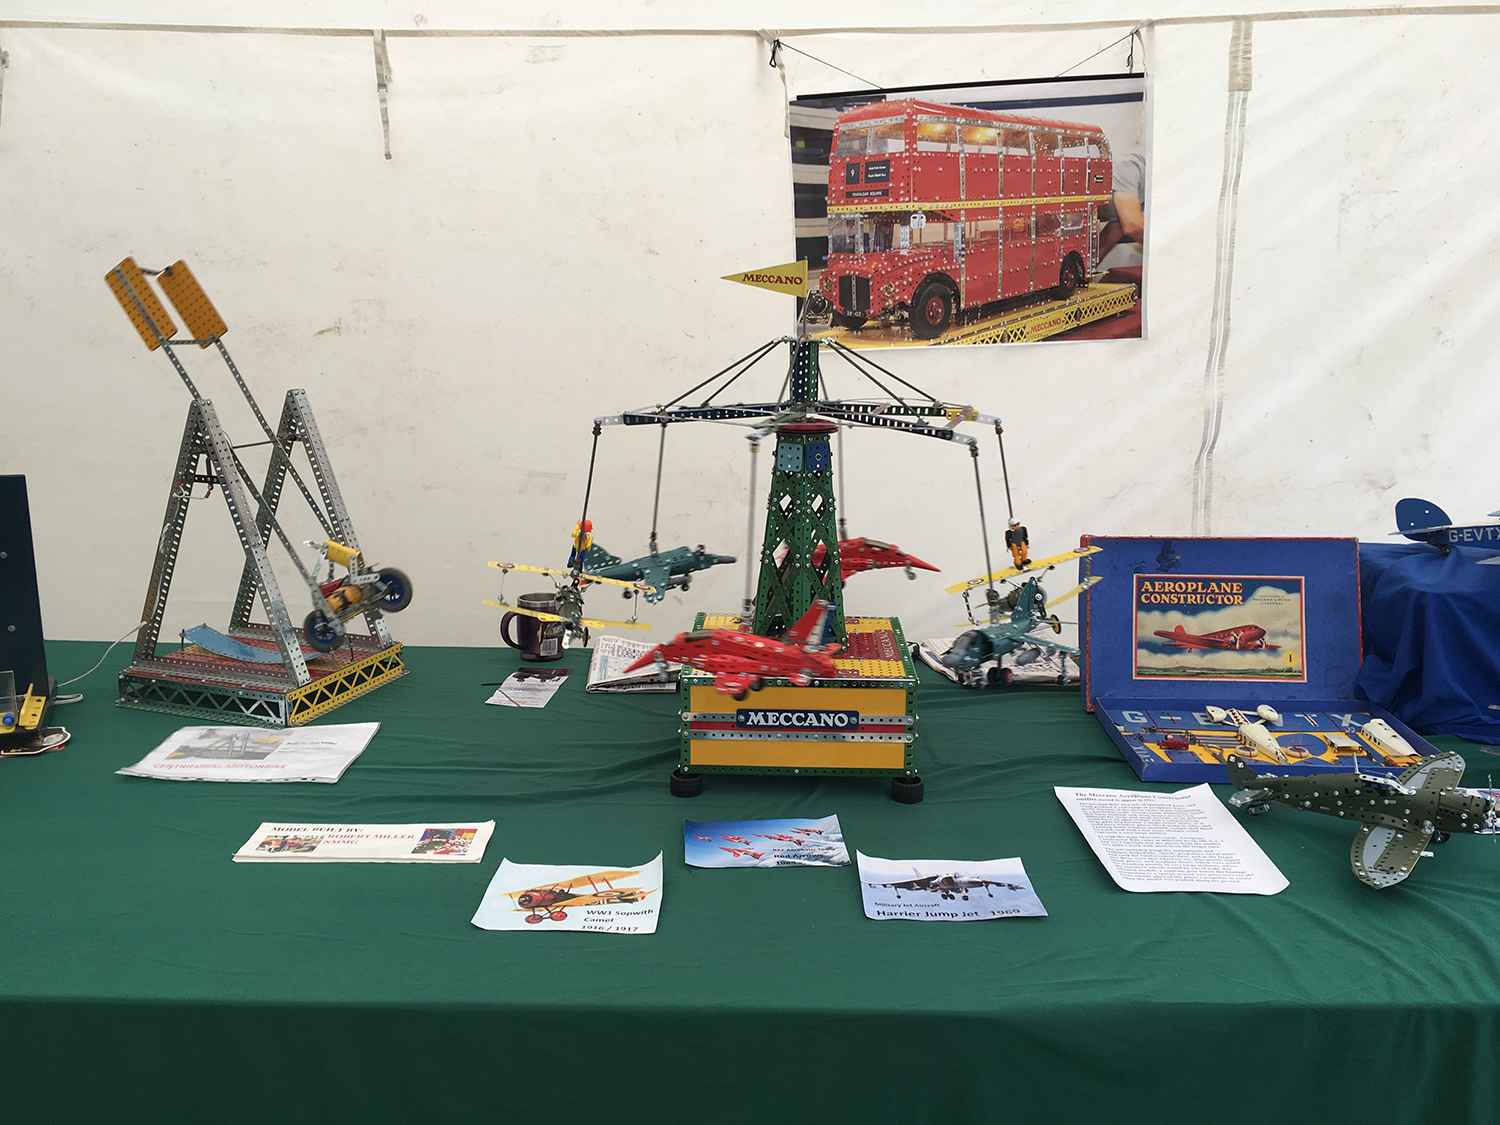 Melton & District Model Show Beat SCAD Meccano display